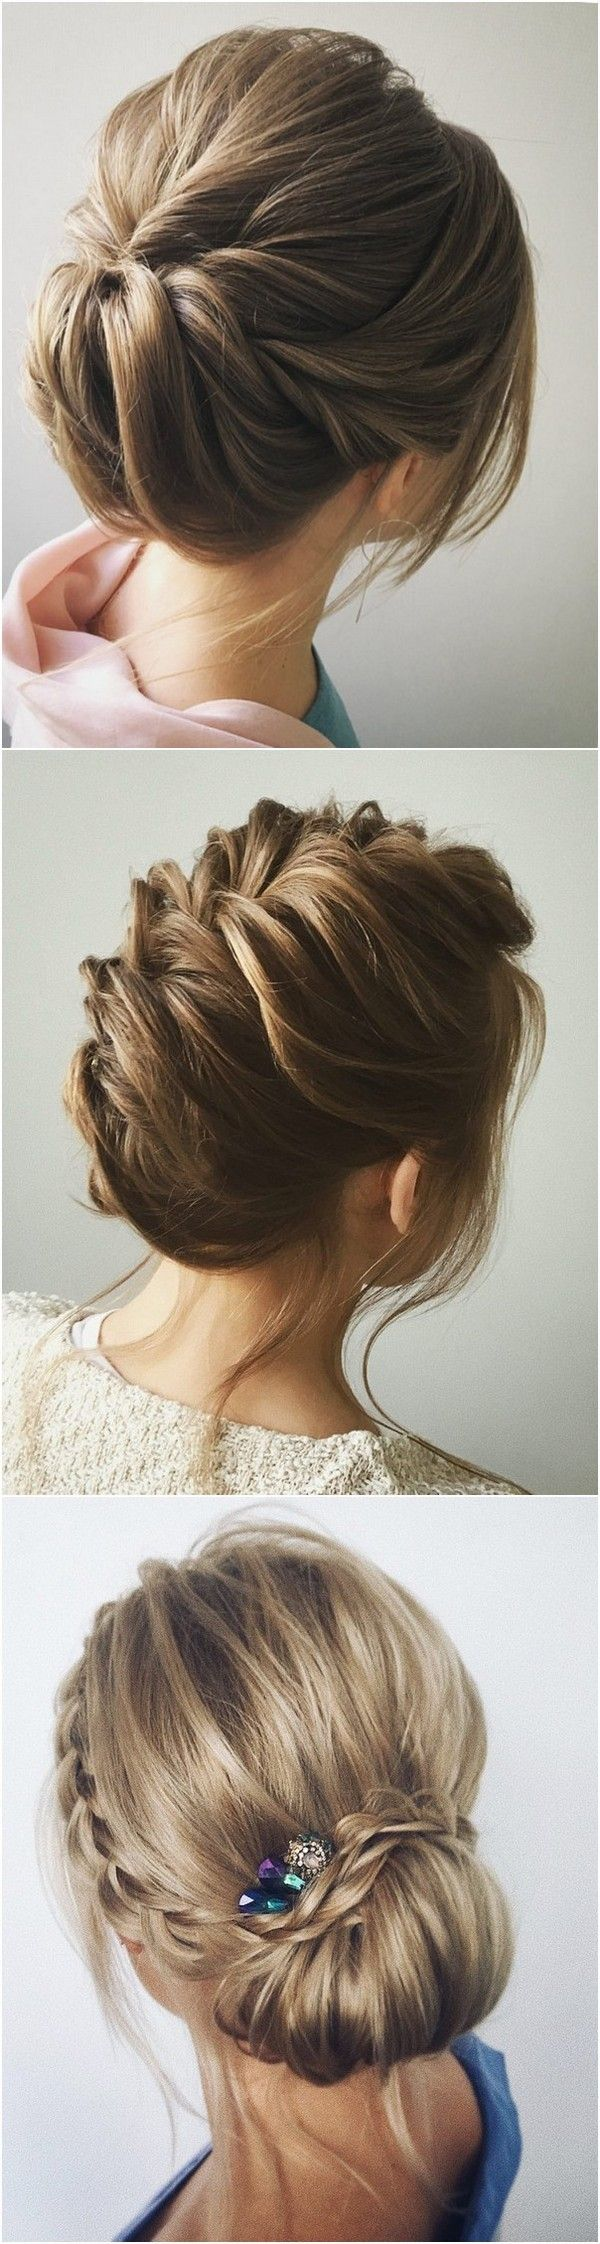 hair style tutorials best 25 twisted updo ideas on updos for curly 5327